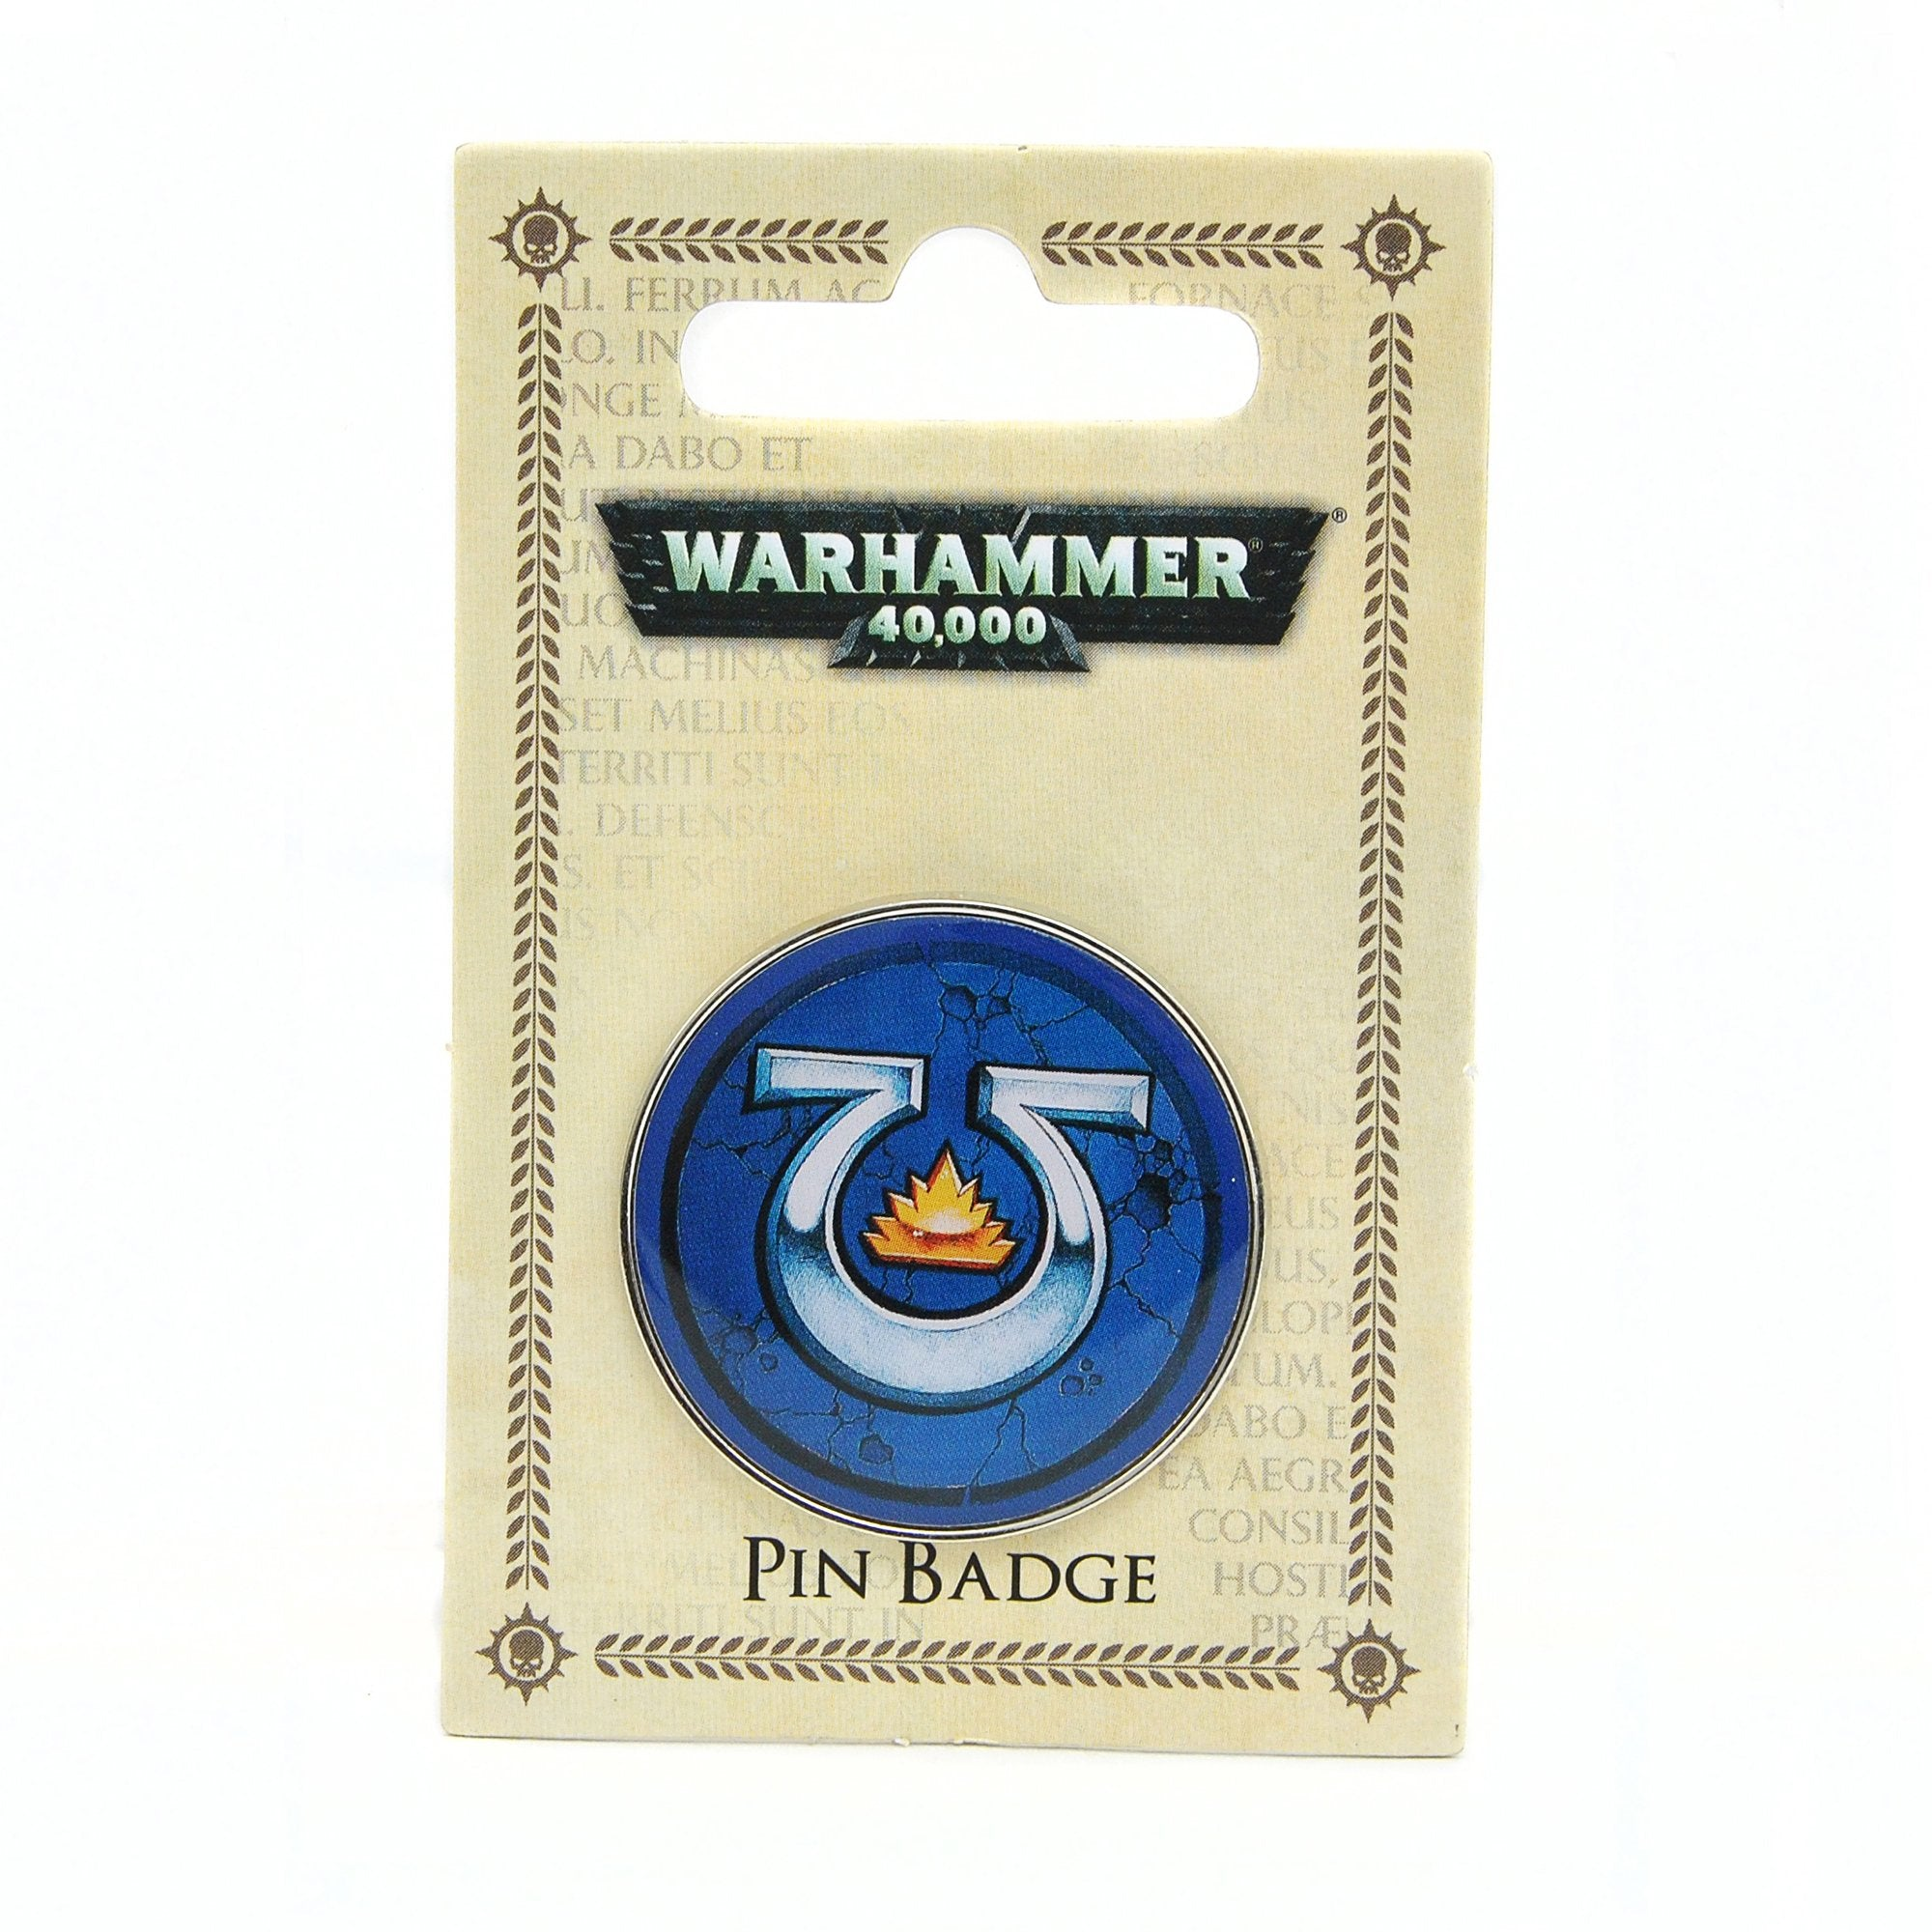 Warhammer 40,000 Pin Badge - Ultramarines - Half Moon Bay US